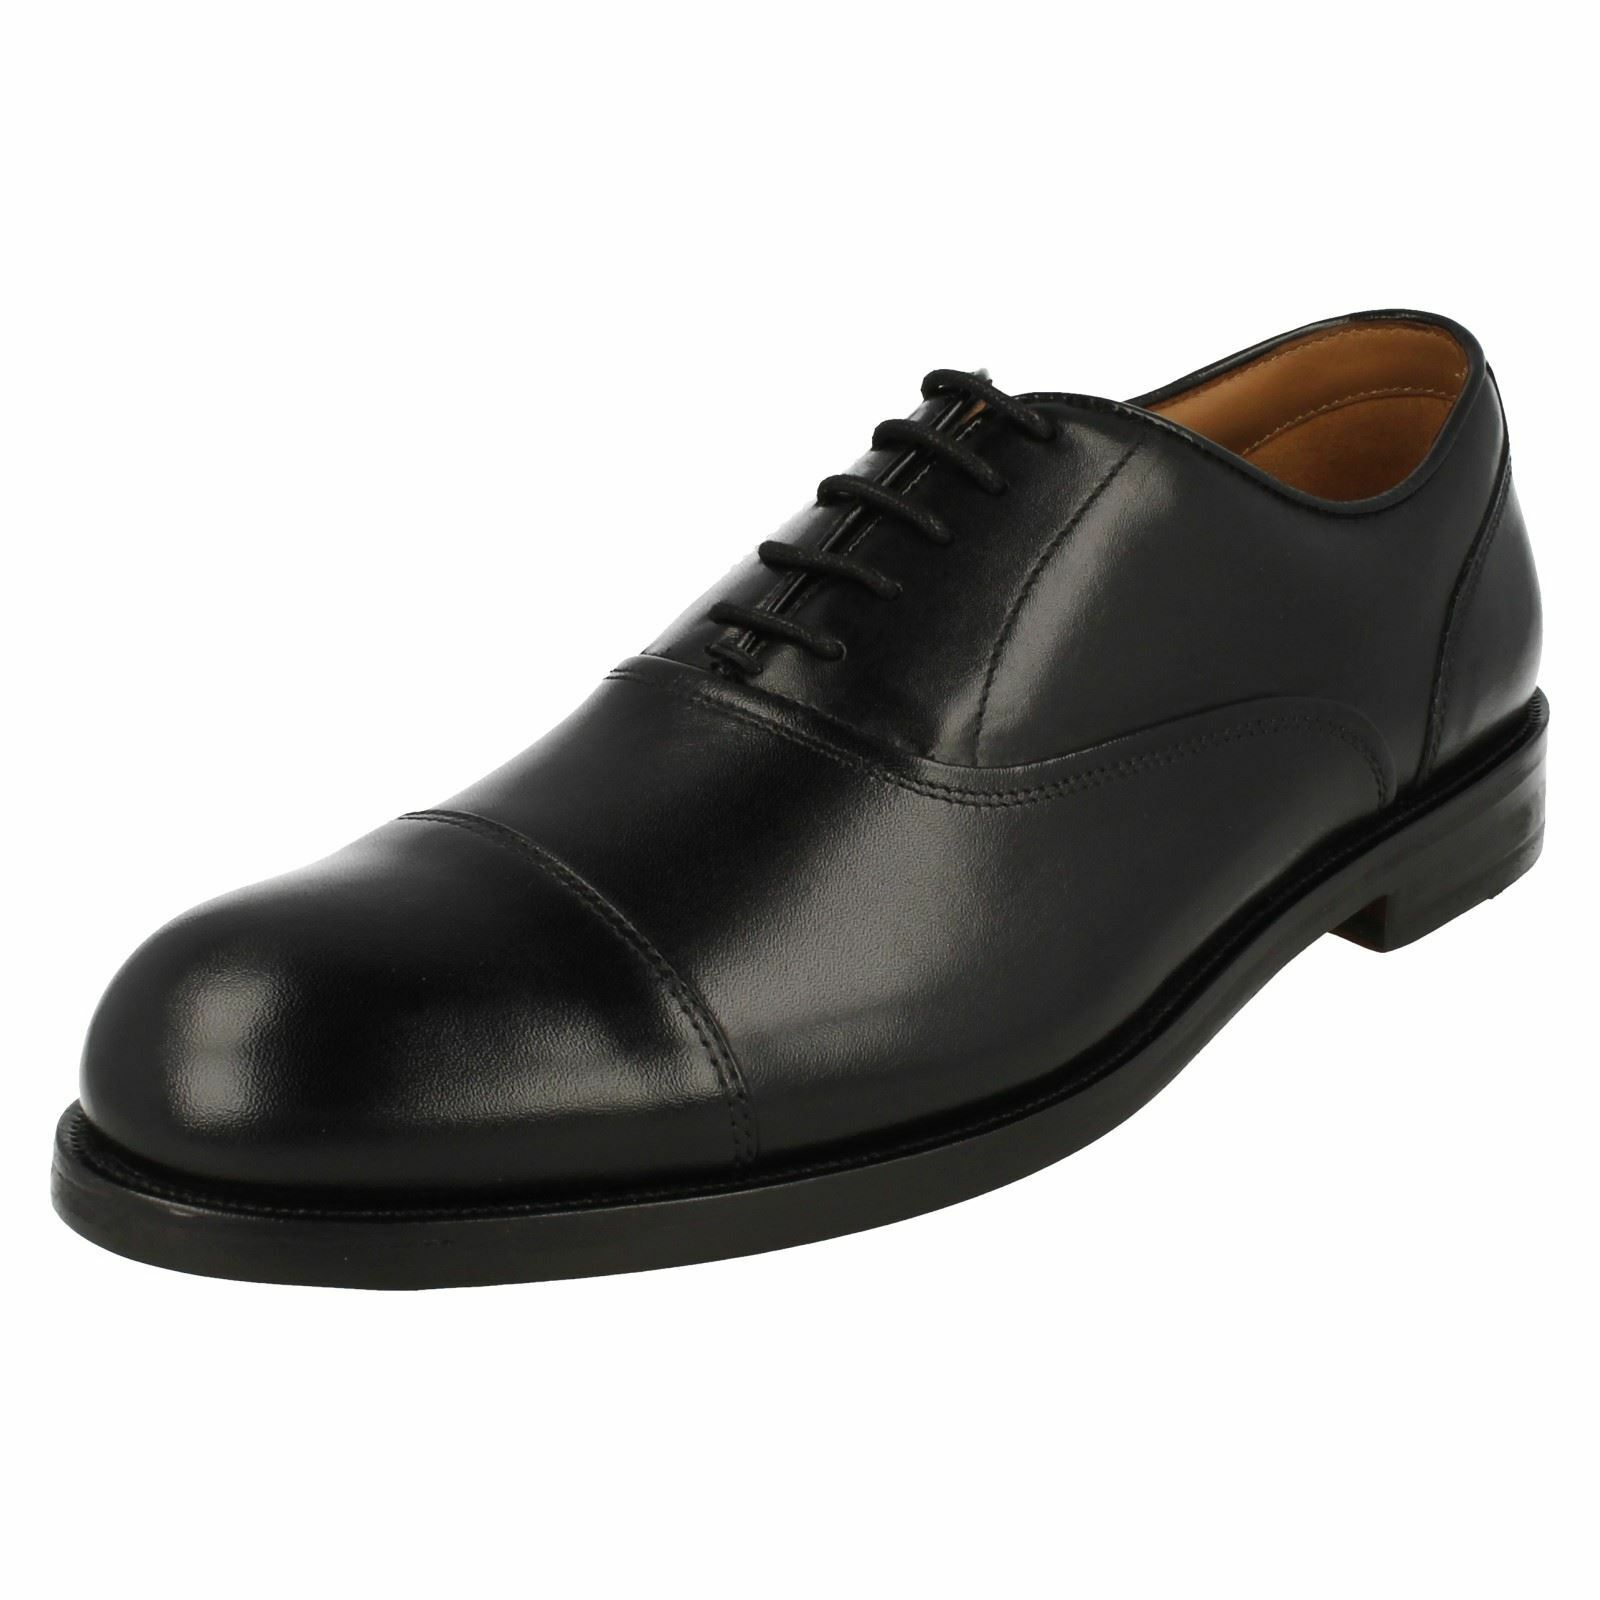 Homme Chaussures Clarks Style Oxford Chaussures Homme coling Boss 4c60c9